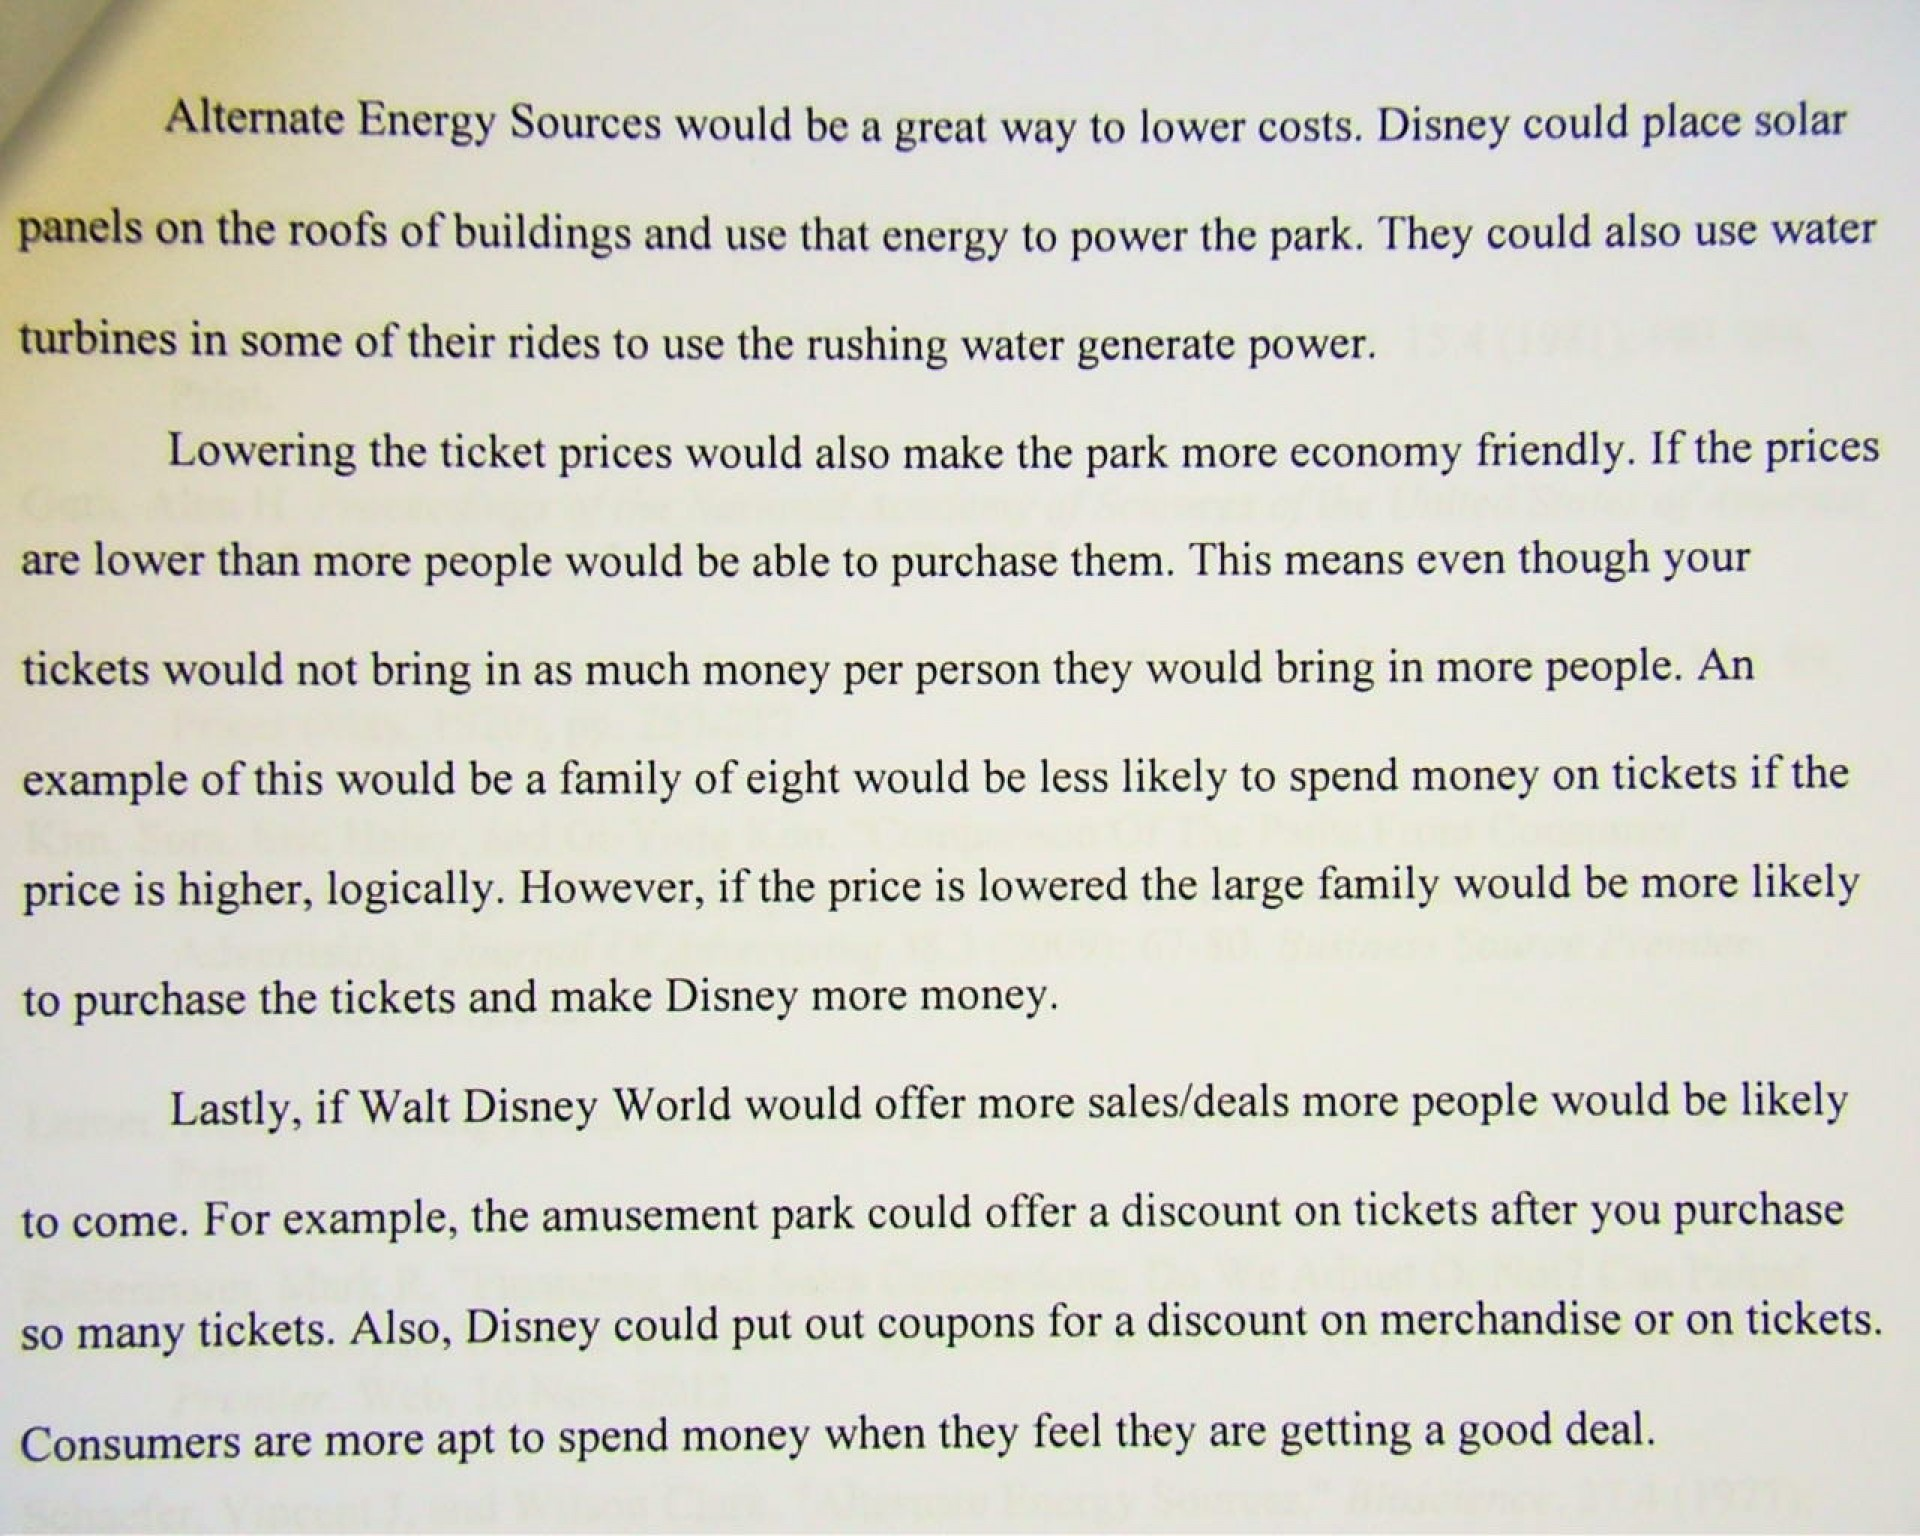 007 Satire Essay Example Student2bsample Beautiful Examples On Gun Control Questions Ideas 1920